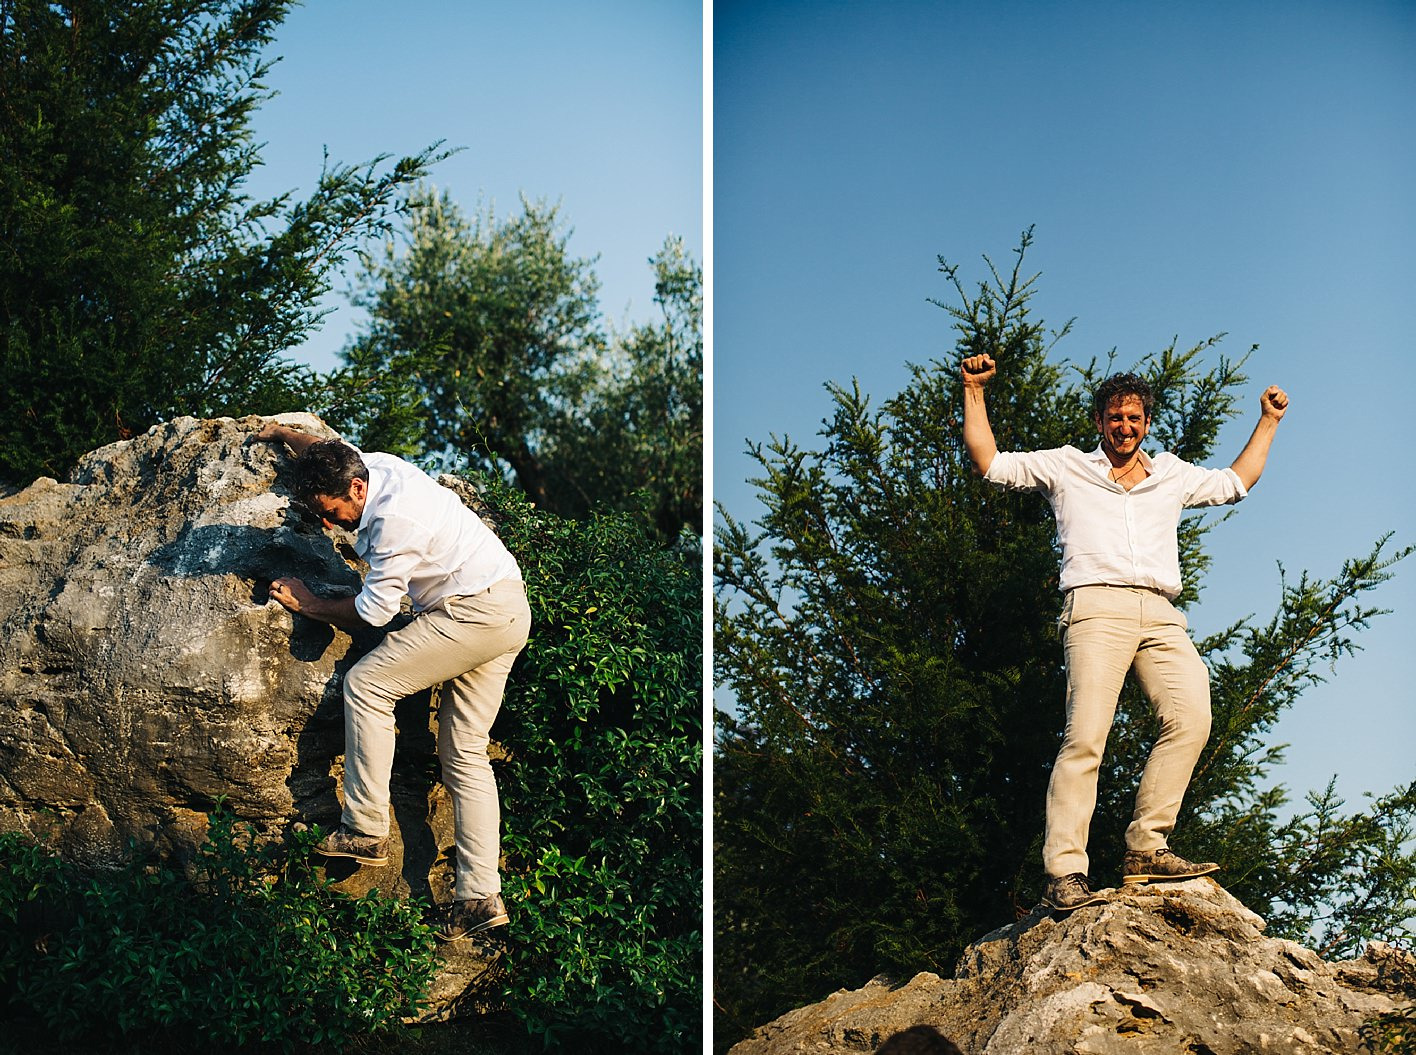 Groom climbing large bolder at wedding